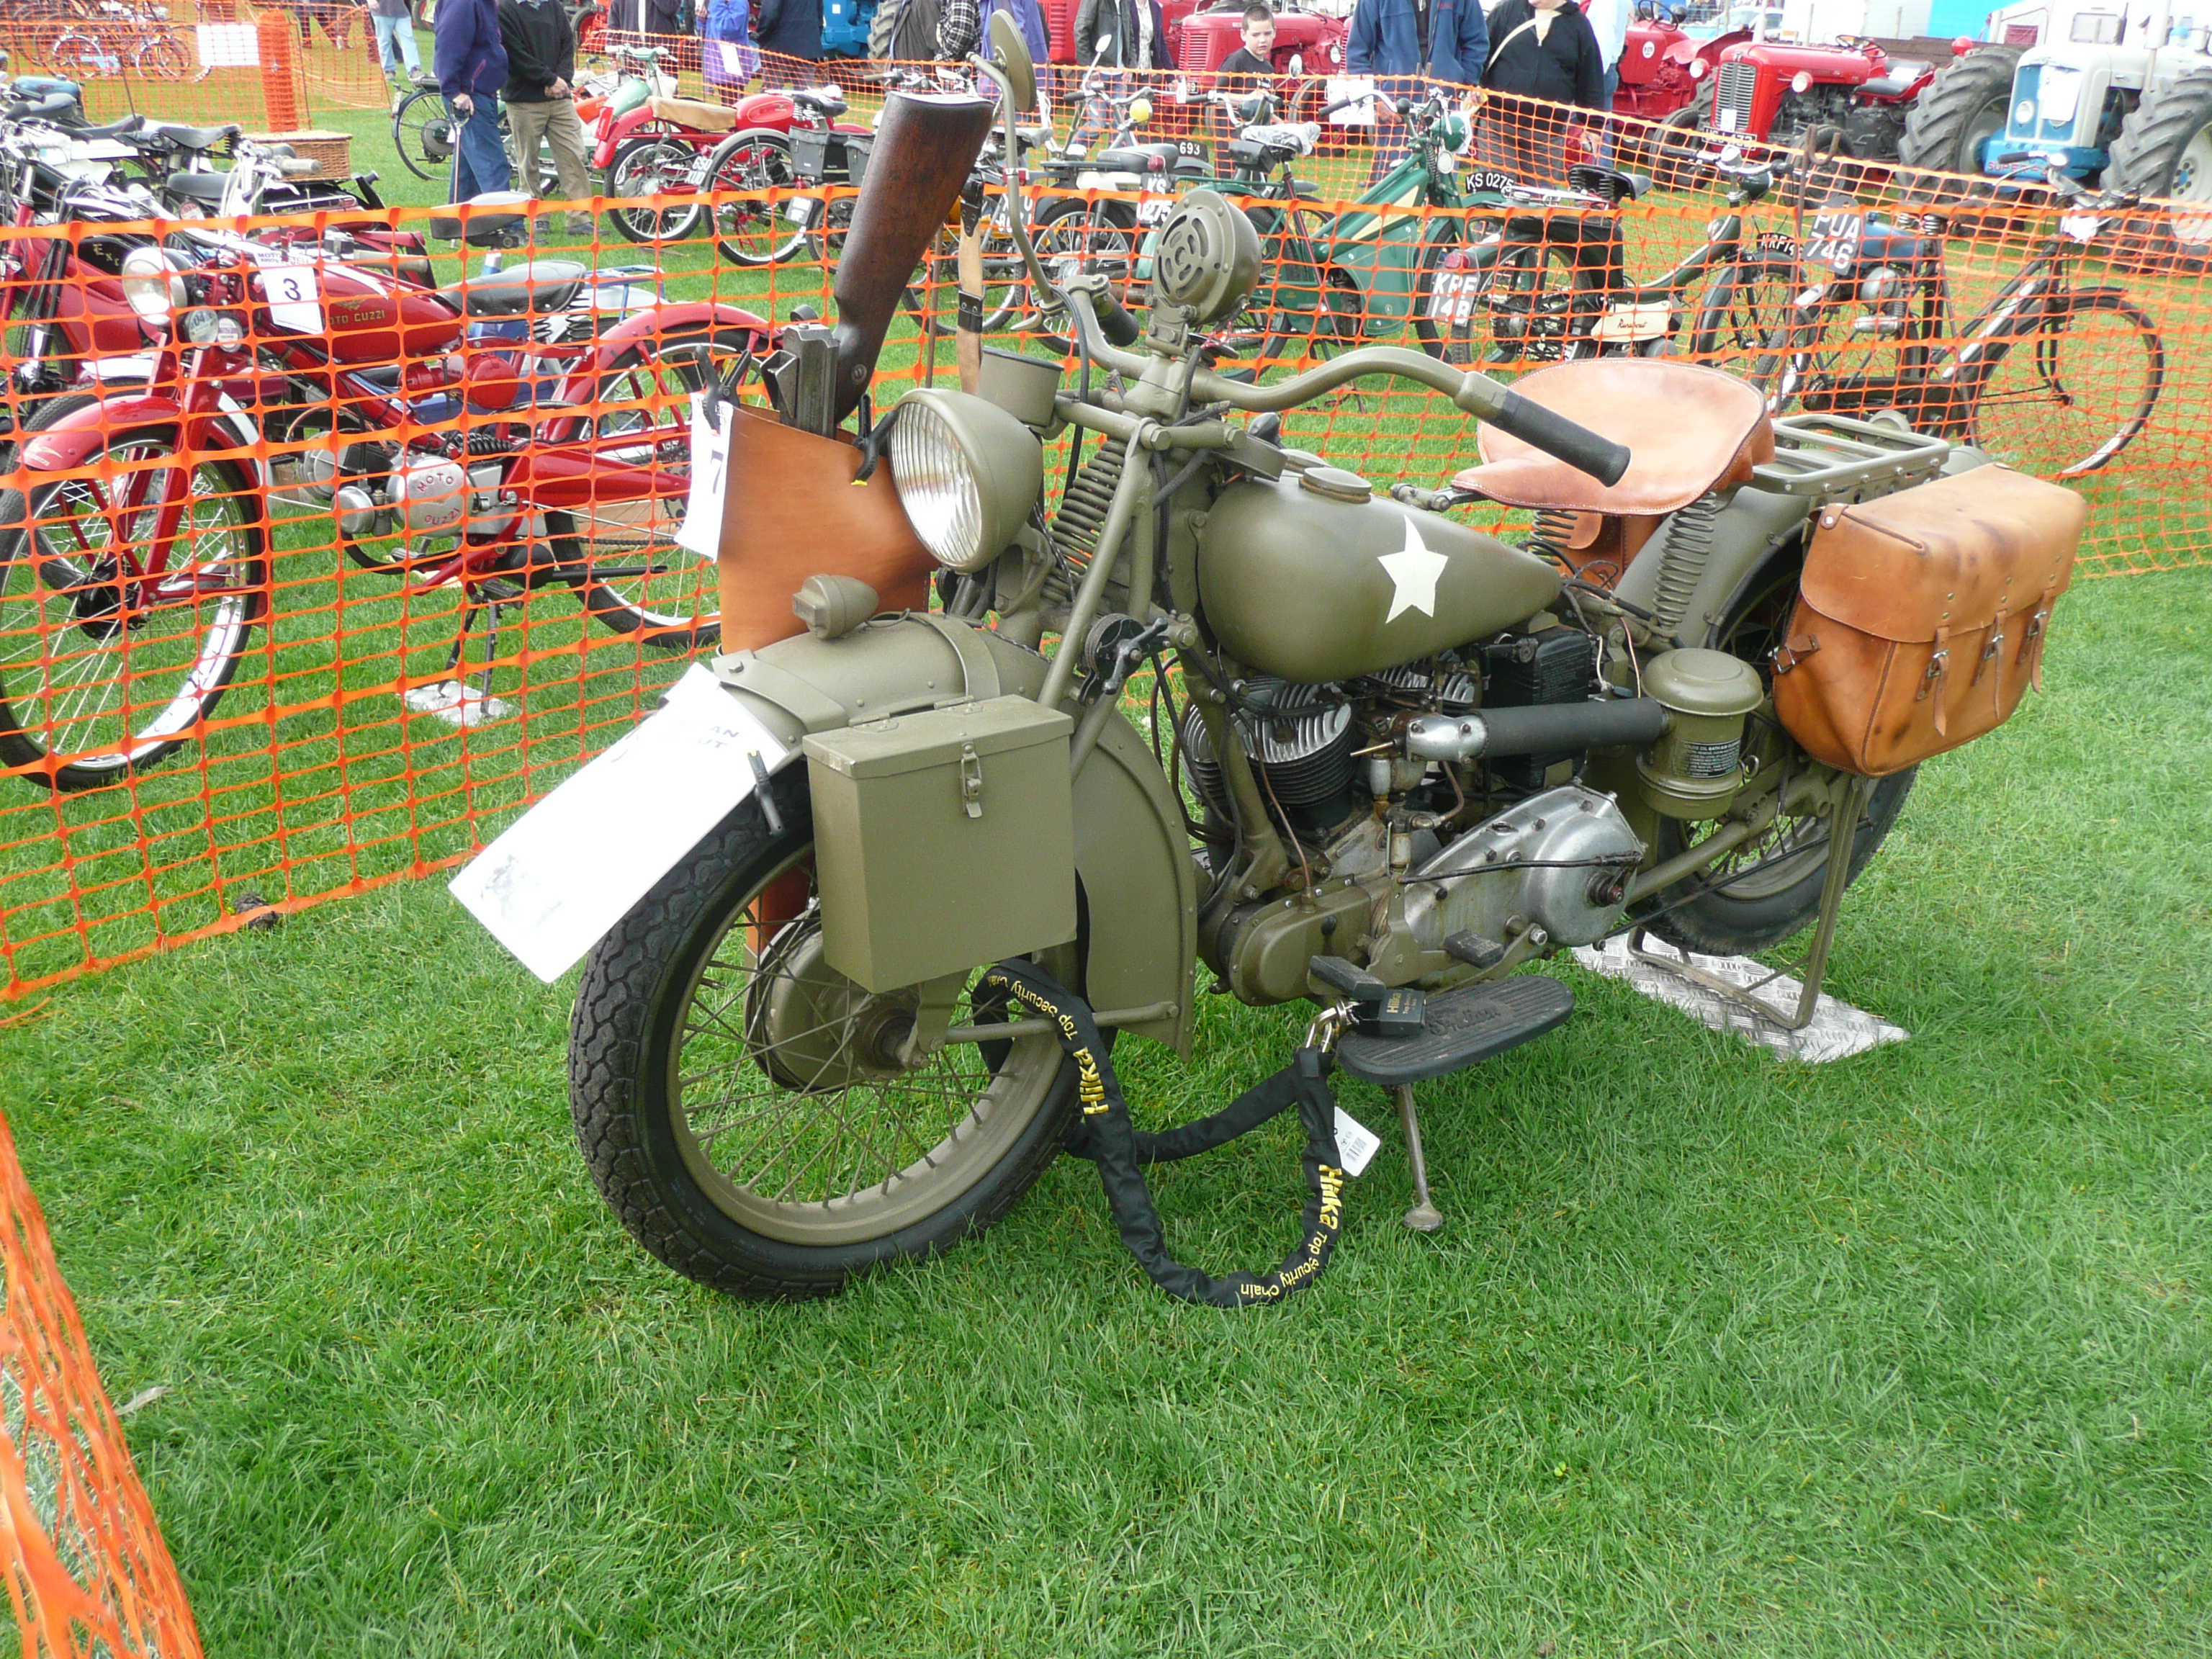 Ural M-63 with sidecar 1977 images #127217